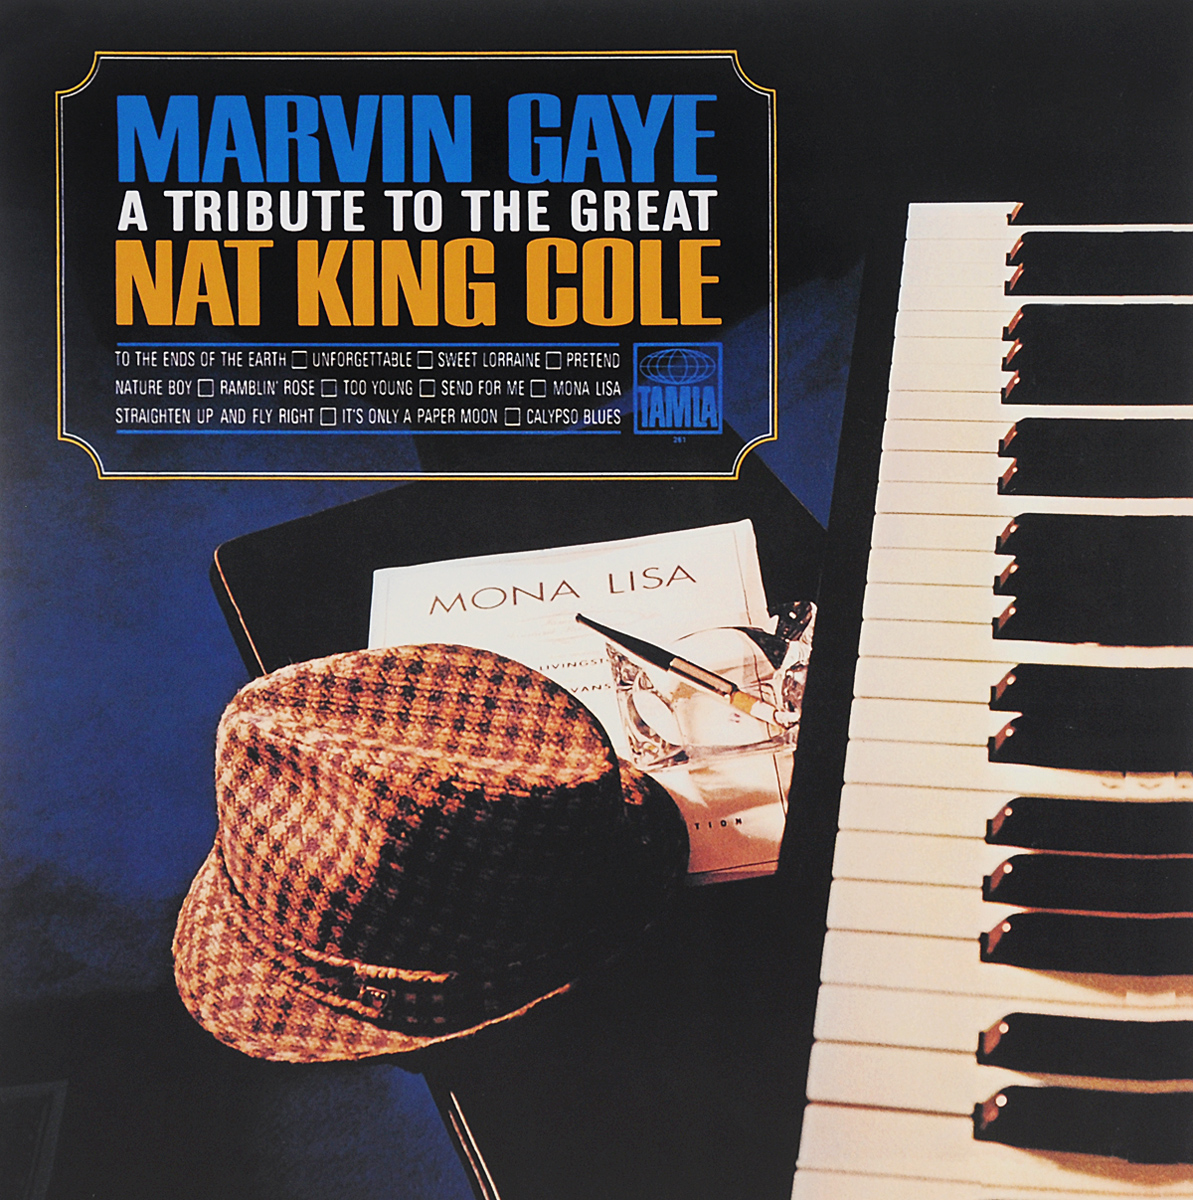 Марвин Гэй Marvin Gaye. A Tribute To The Great Nat King Cole (LP) marvin gaye marvin gaye a tribute to the great nat king cole